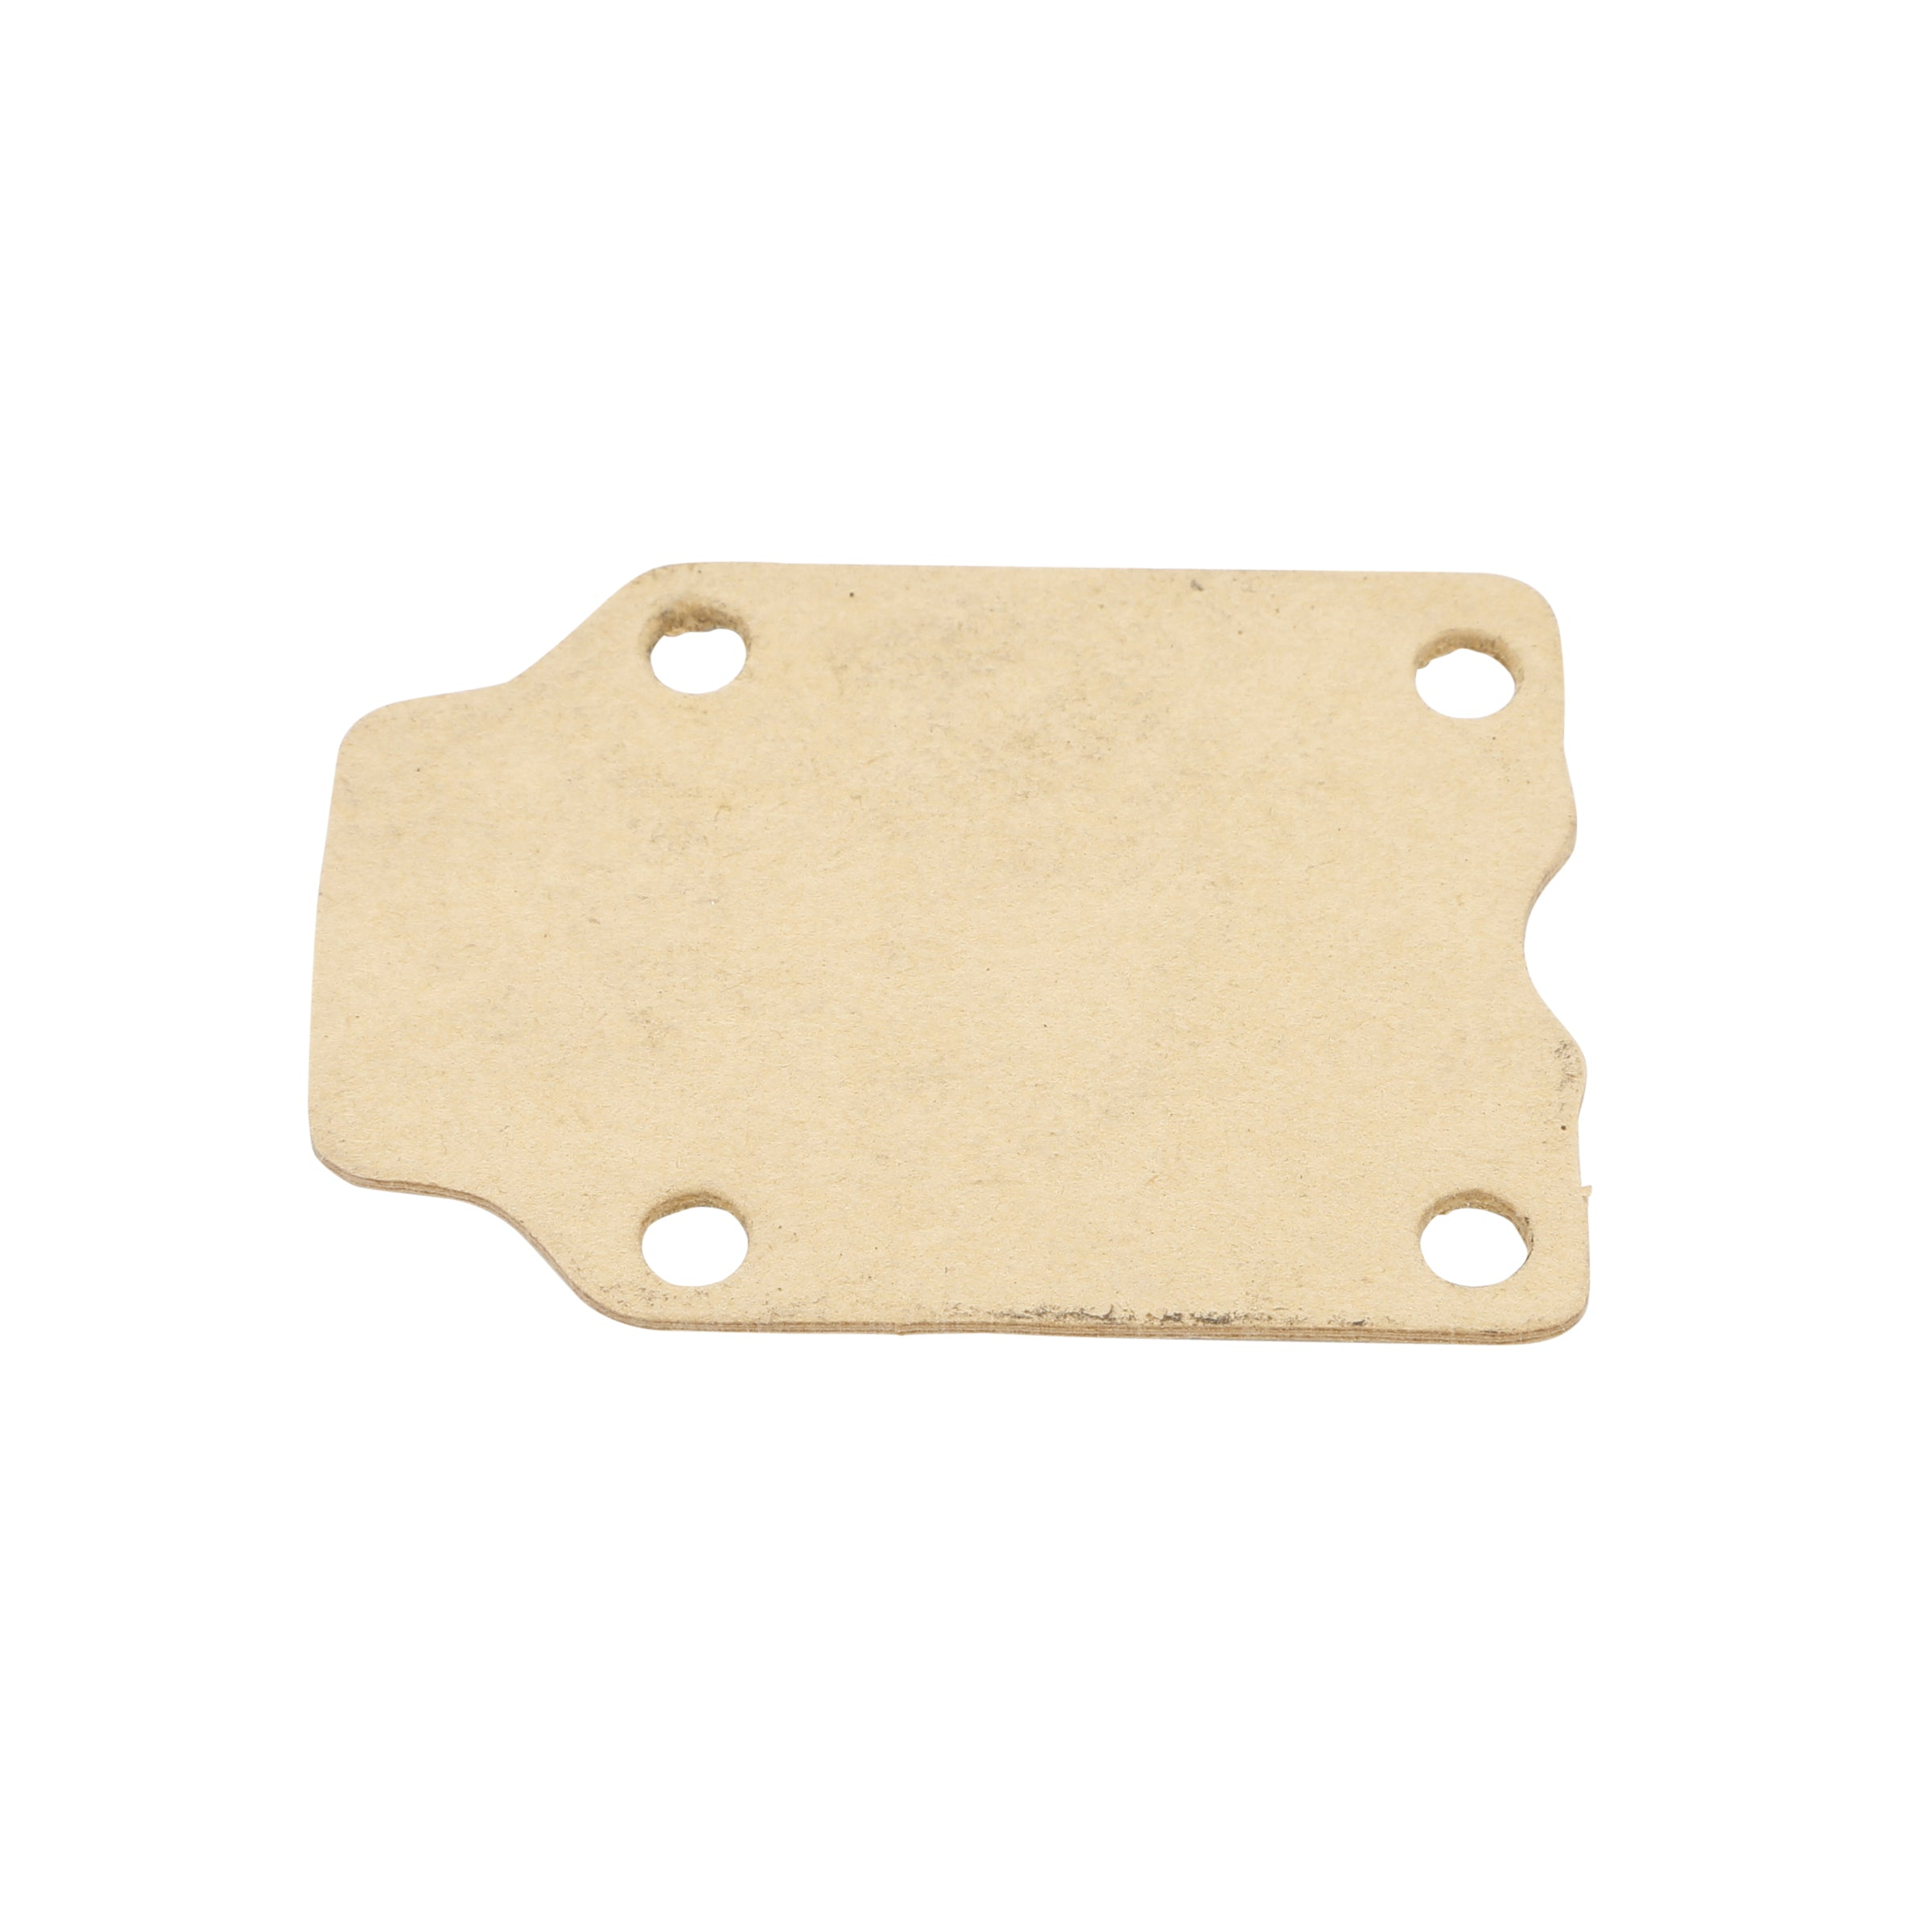 Starter Switch Gasket • 1928-31 Model A Ford